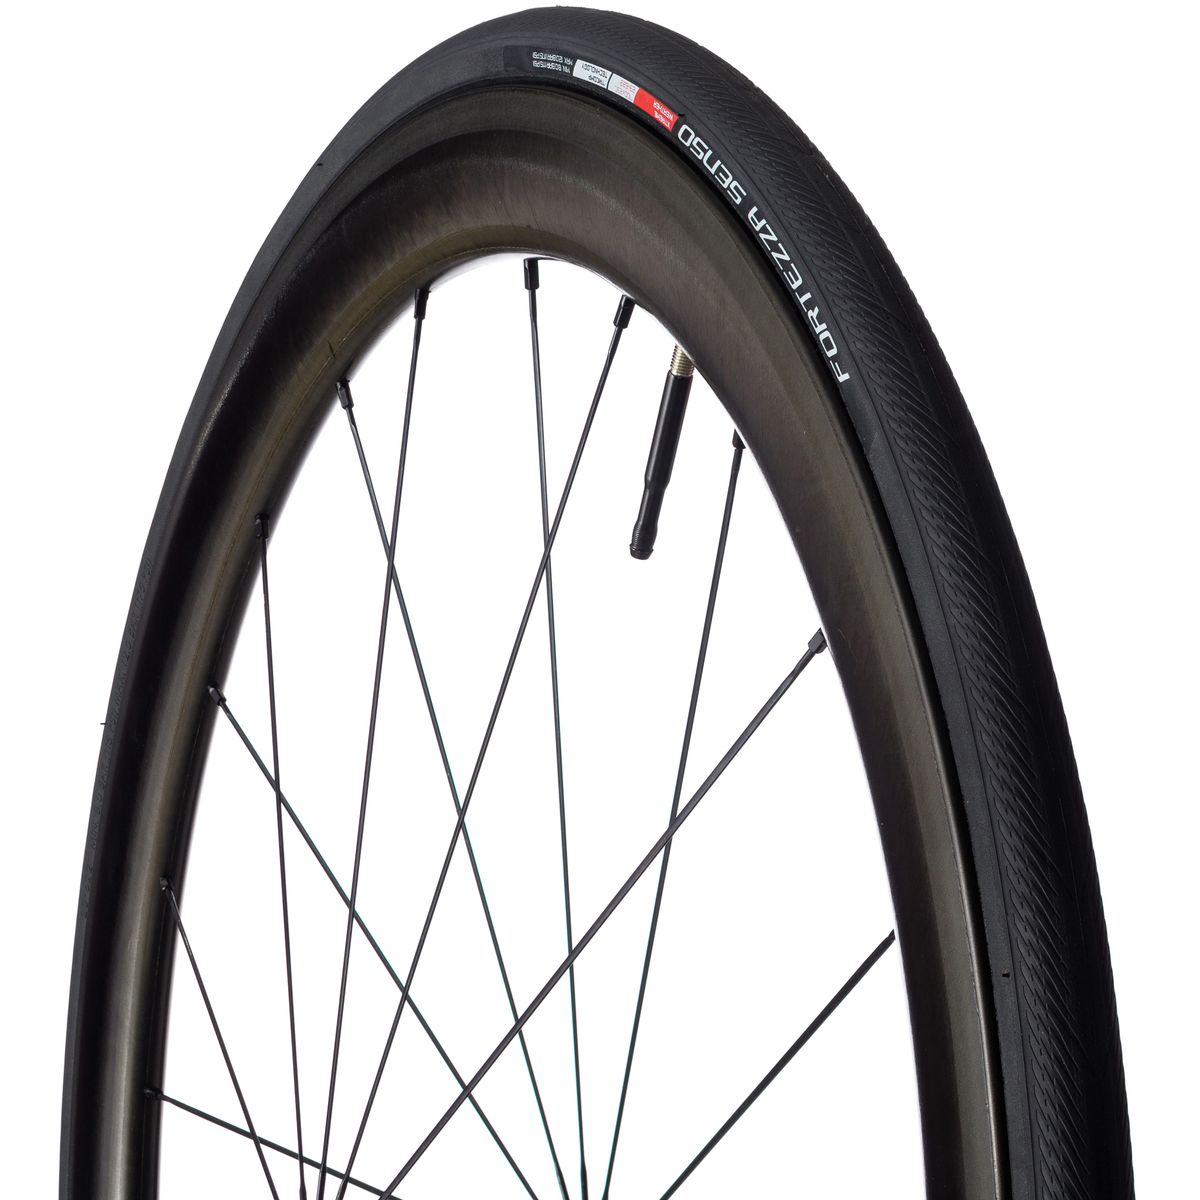 3 Best Road and Tri Bike Tires in 2019 | Complete Tri